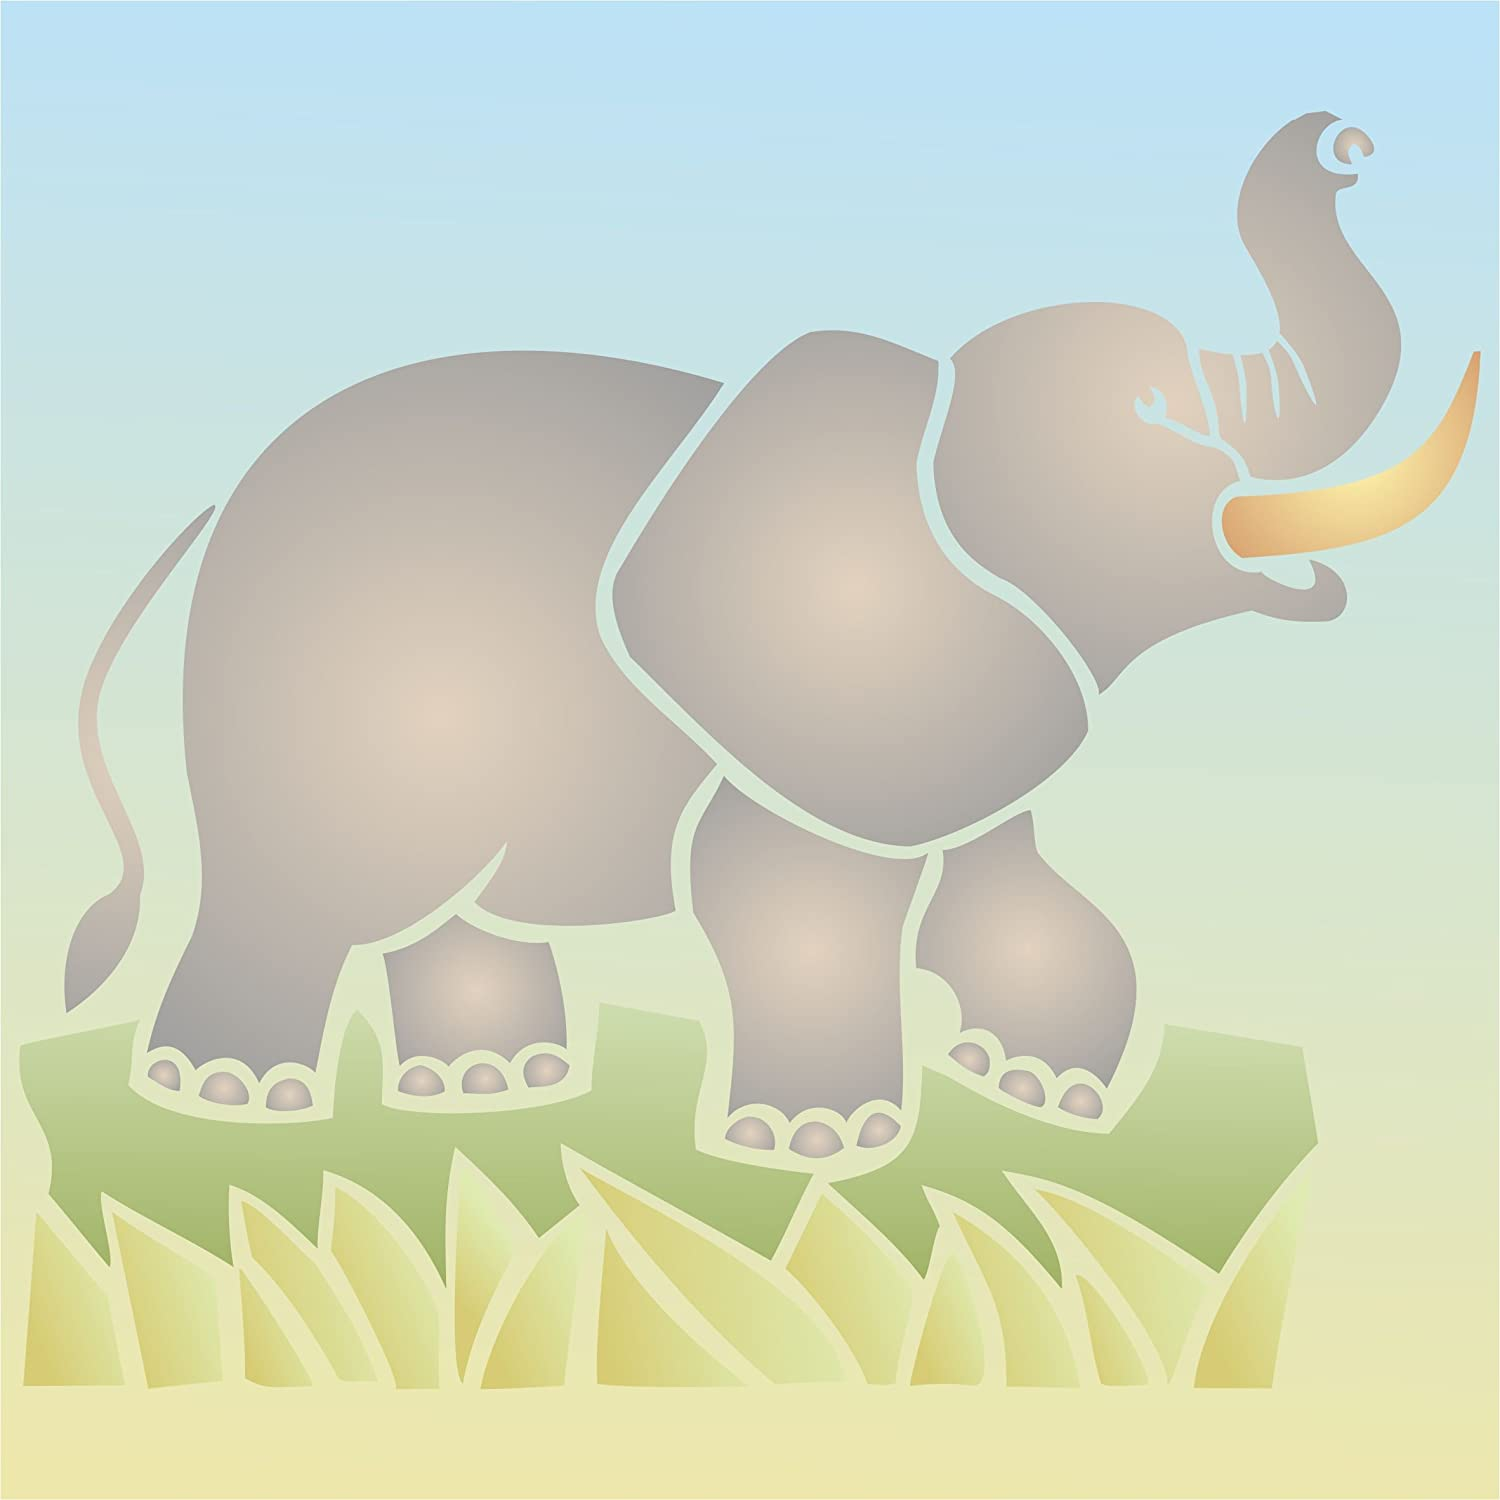 Amazon african elephant stencil size 8w x 7h reusable amazon african elephant stencil size 8w x 7h reusable wall stencils for painting best quality african wild animal ideas use on walls floors amipublicfo Gallery